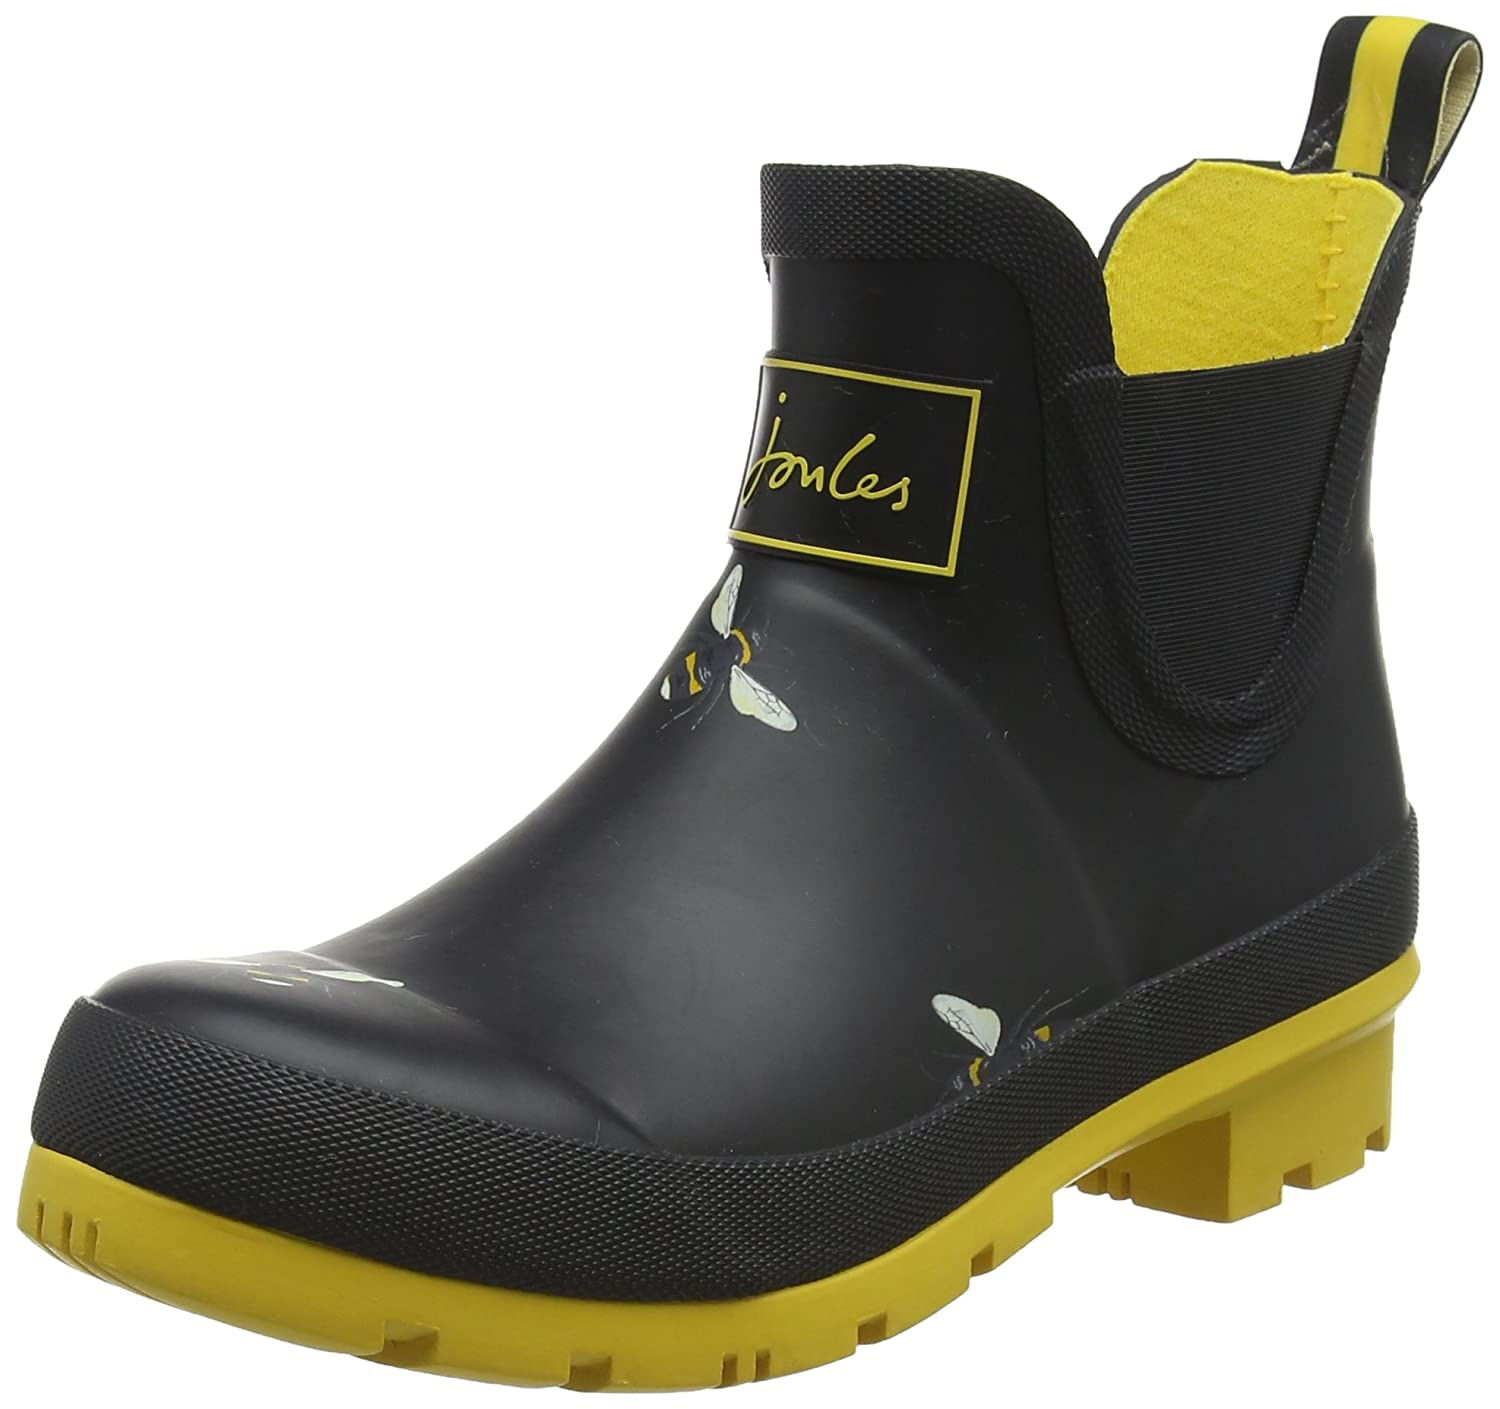 Joules Femme Wellibob, Botanical Bottes Classiques Cheville Femme Noir Joules (Black Botanical Bees) a8abced - conorscully.space